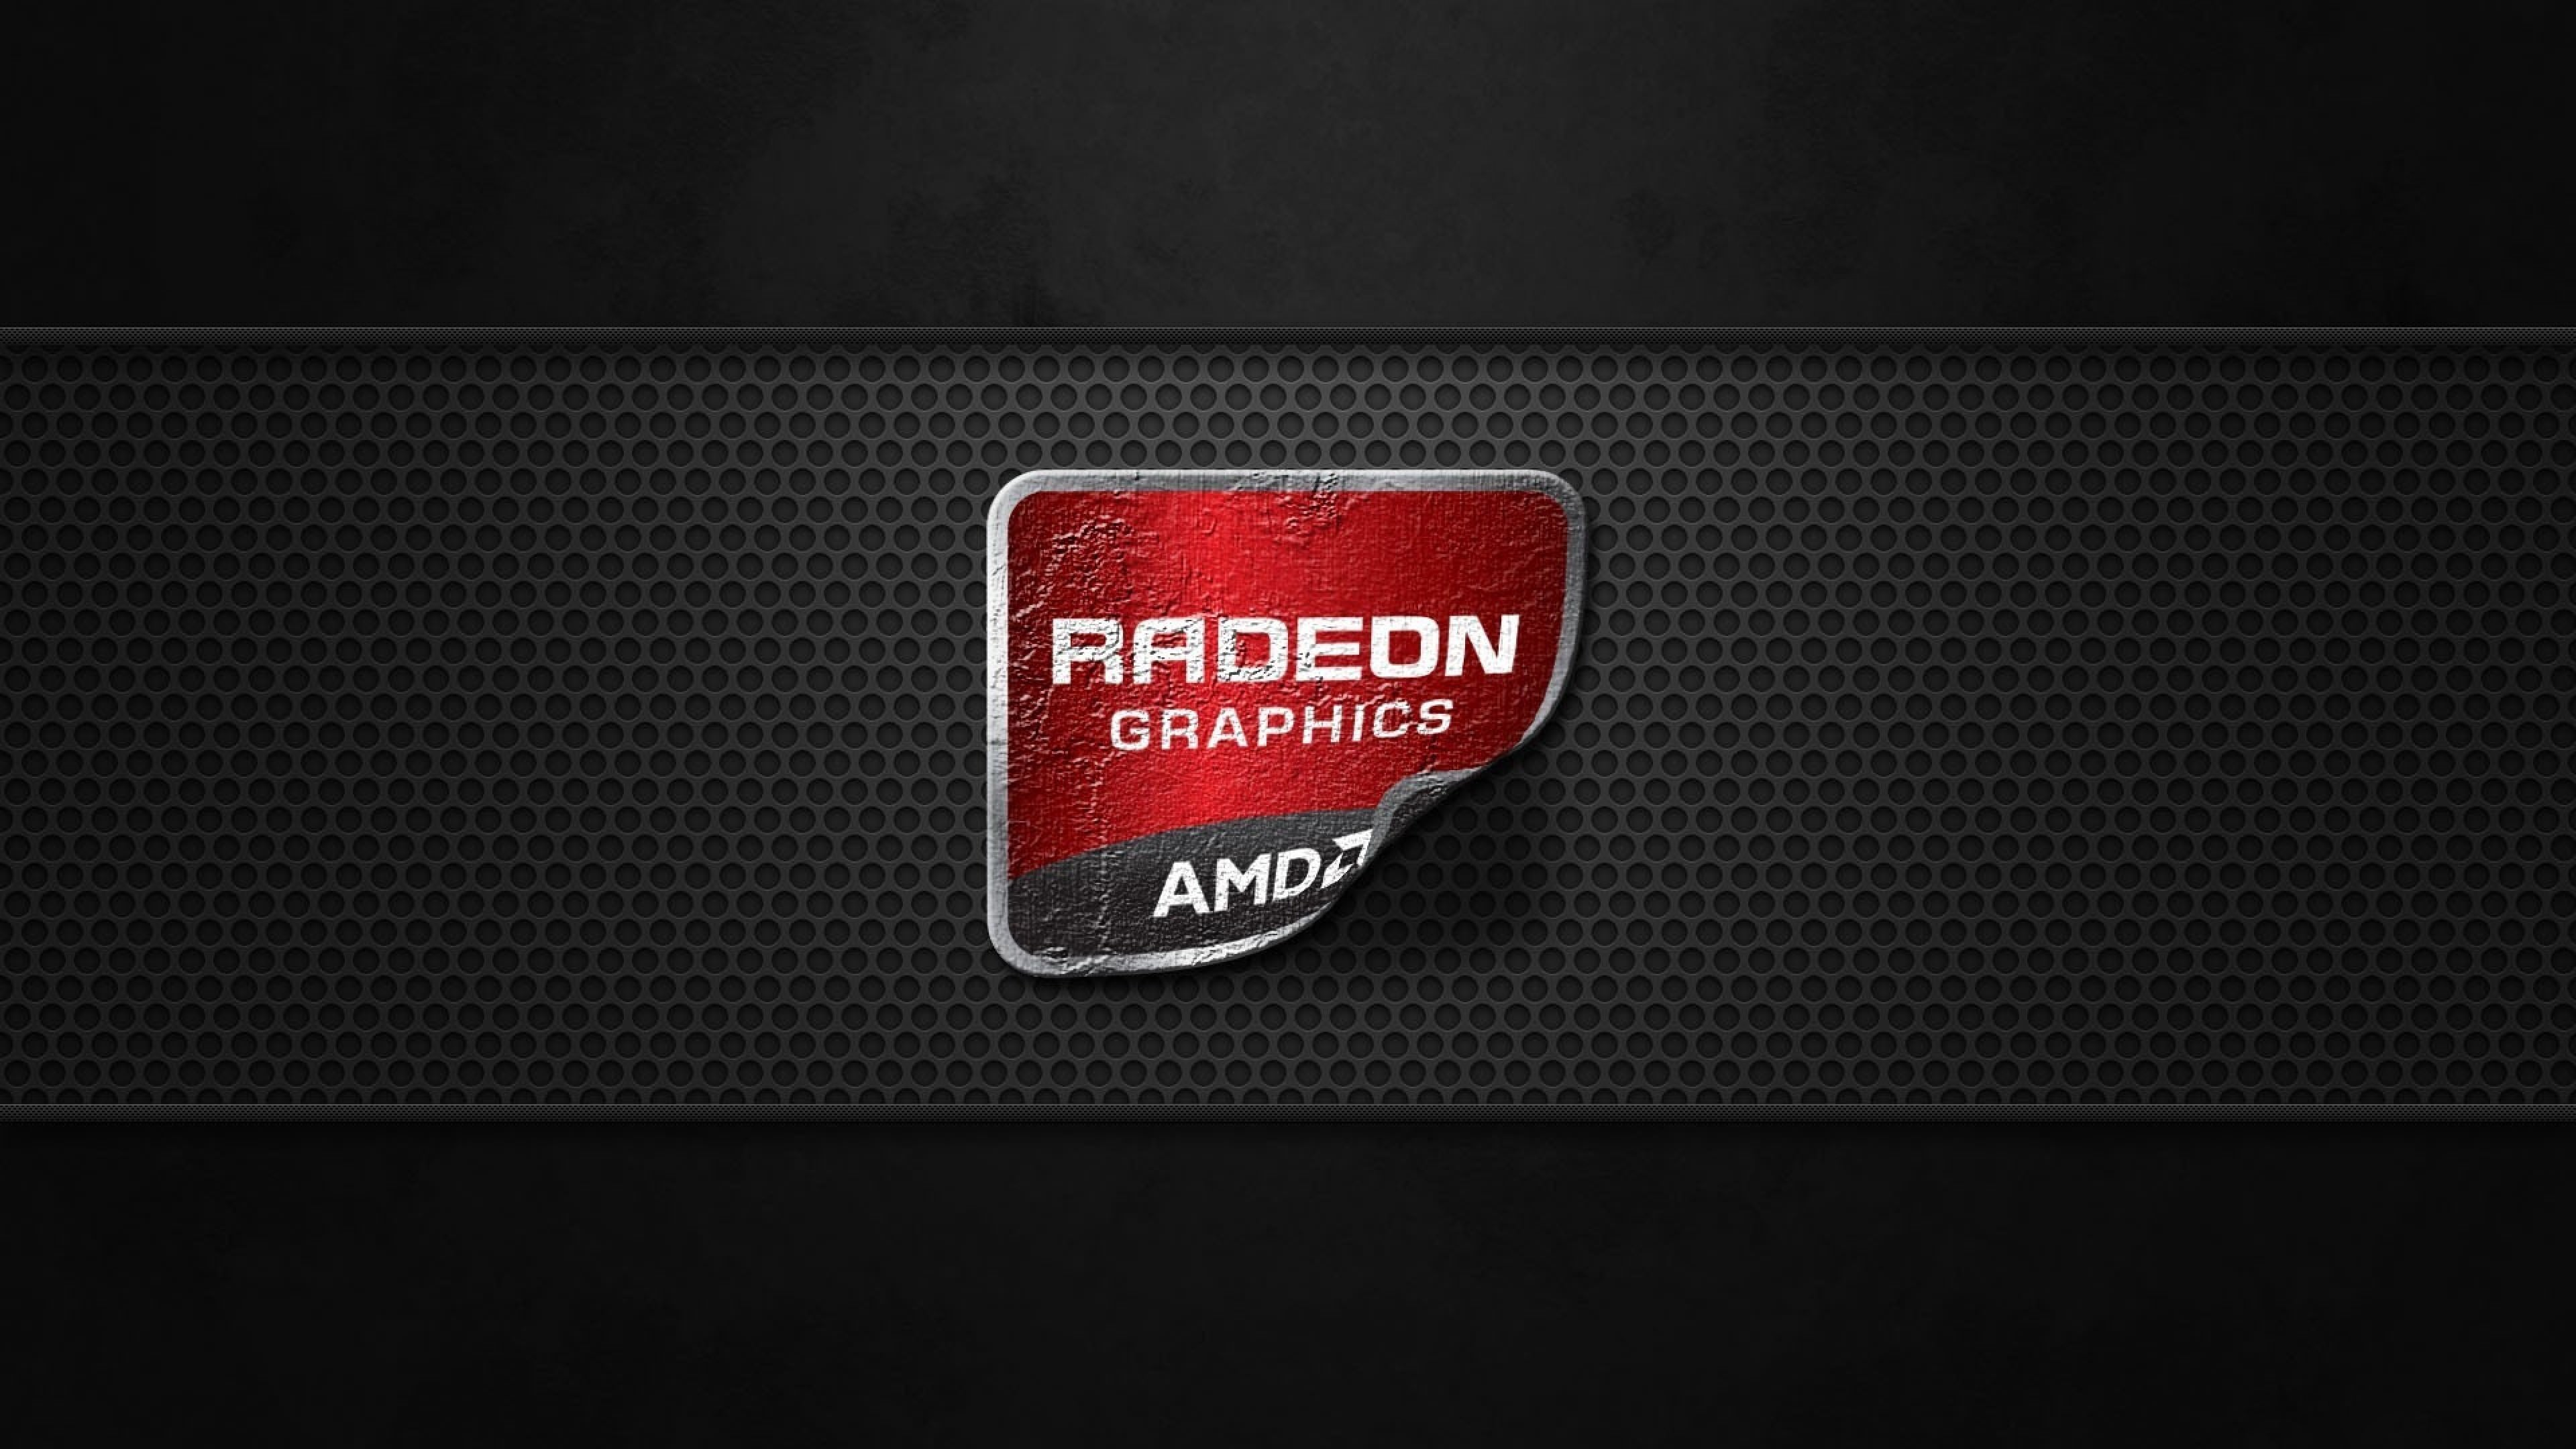 Asus pb287q monitor 2014 4k uhd wallpaper competition page 64 - Amd Radeon Graphics Hd Wallpaper For 4k 3840 X 2160 Hdwallpapers Net